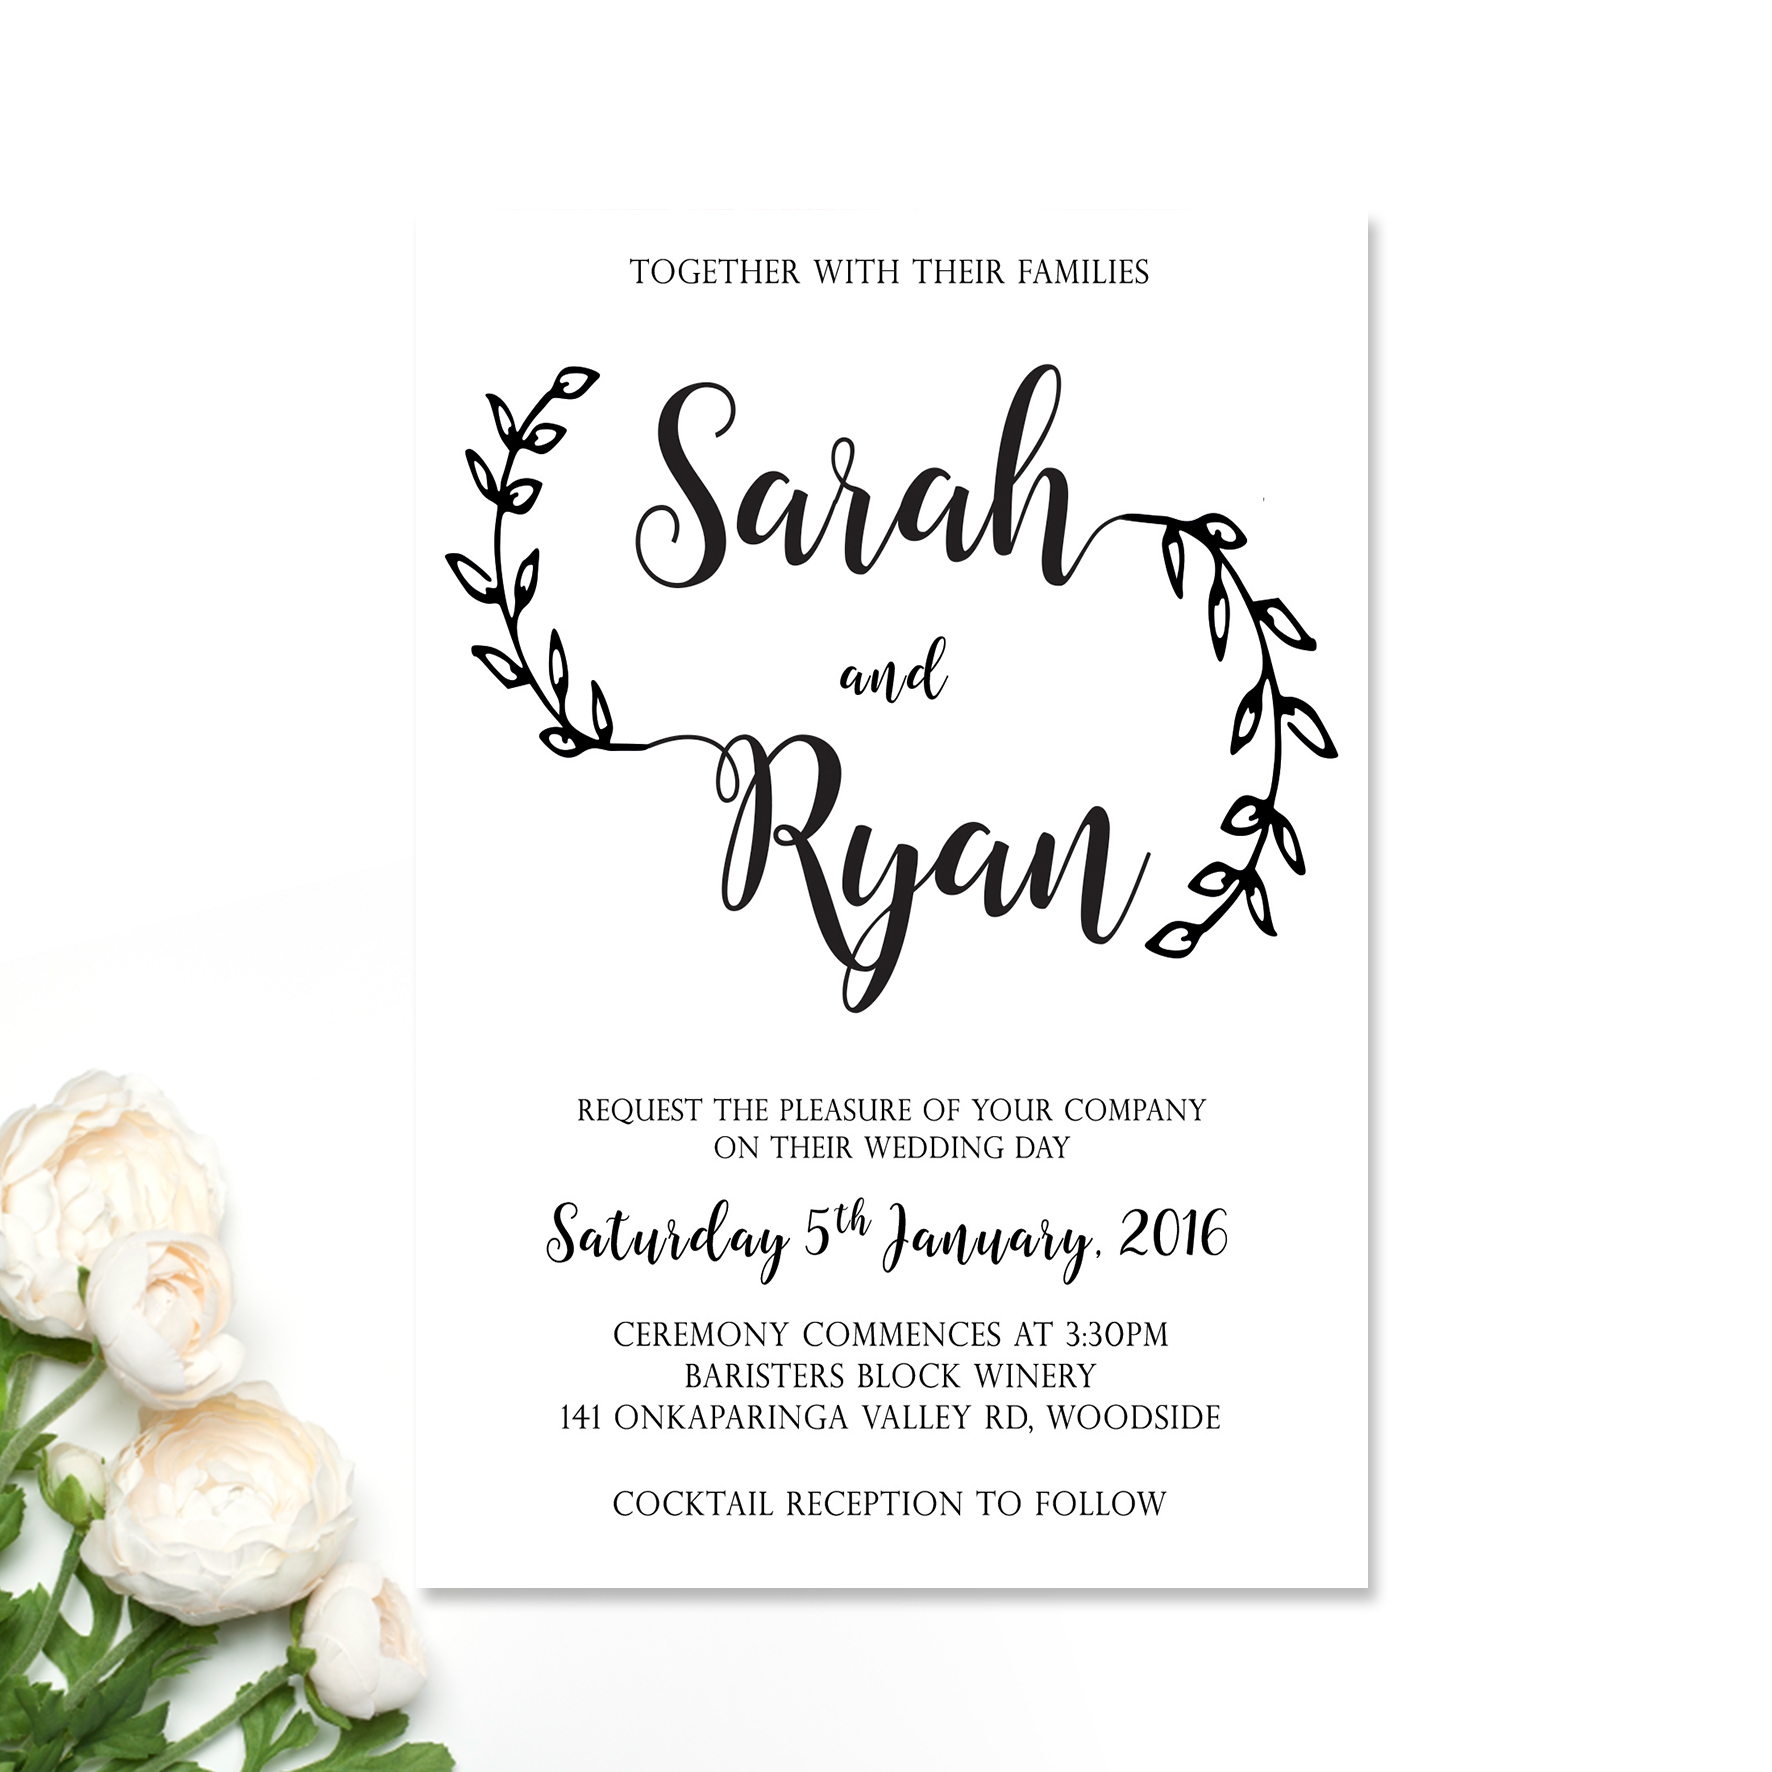 Sarah + Ryan Wedding Invitation